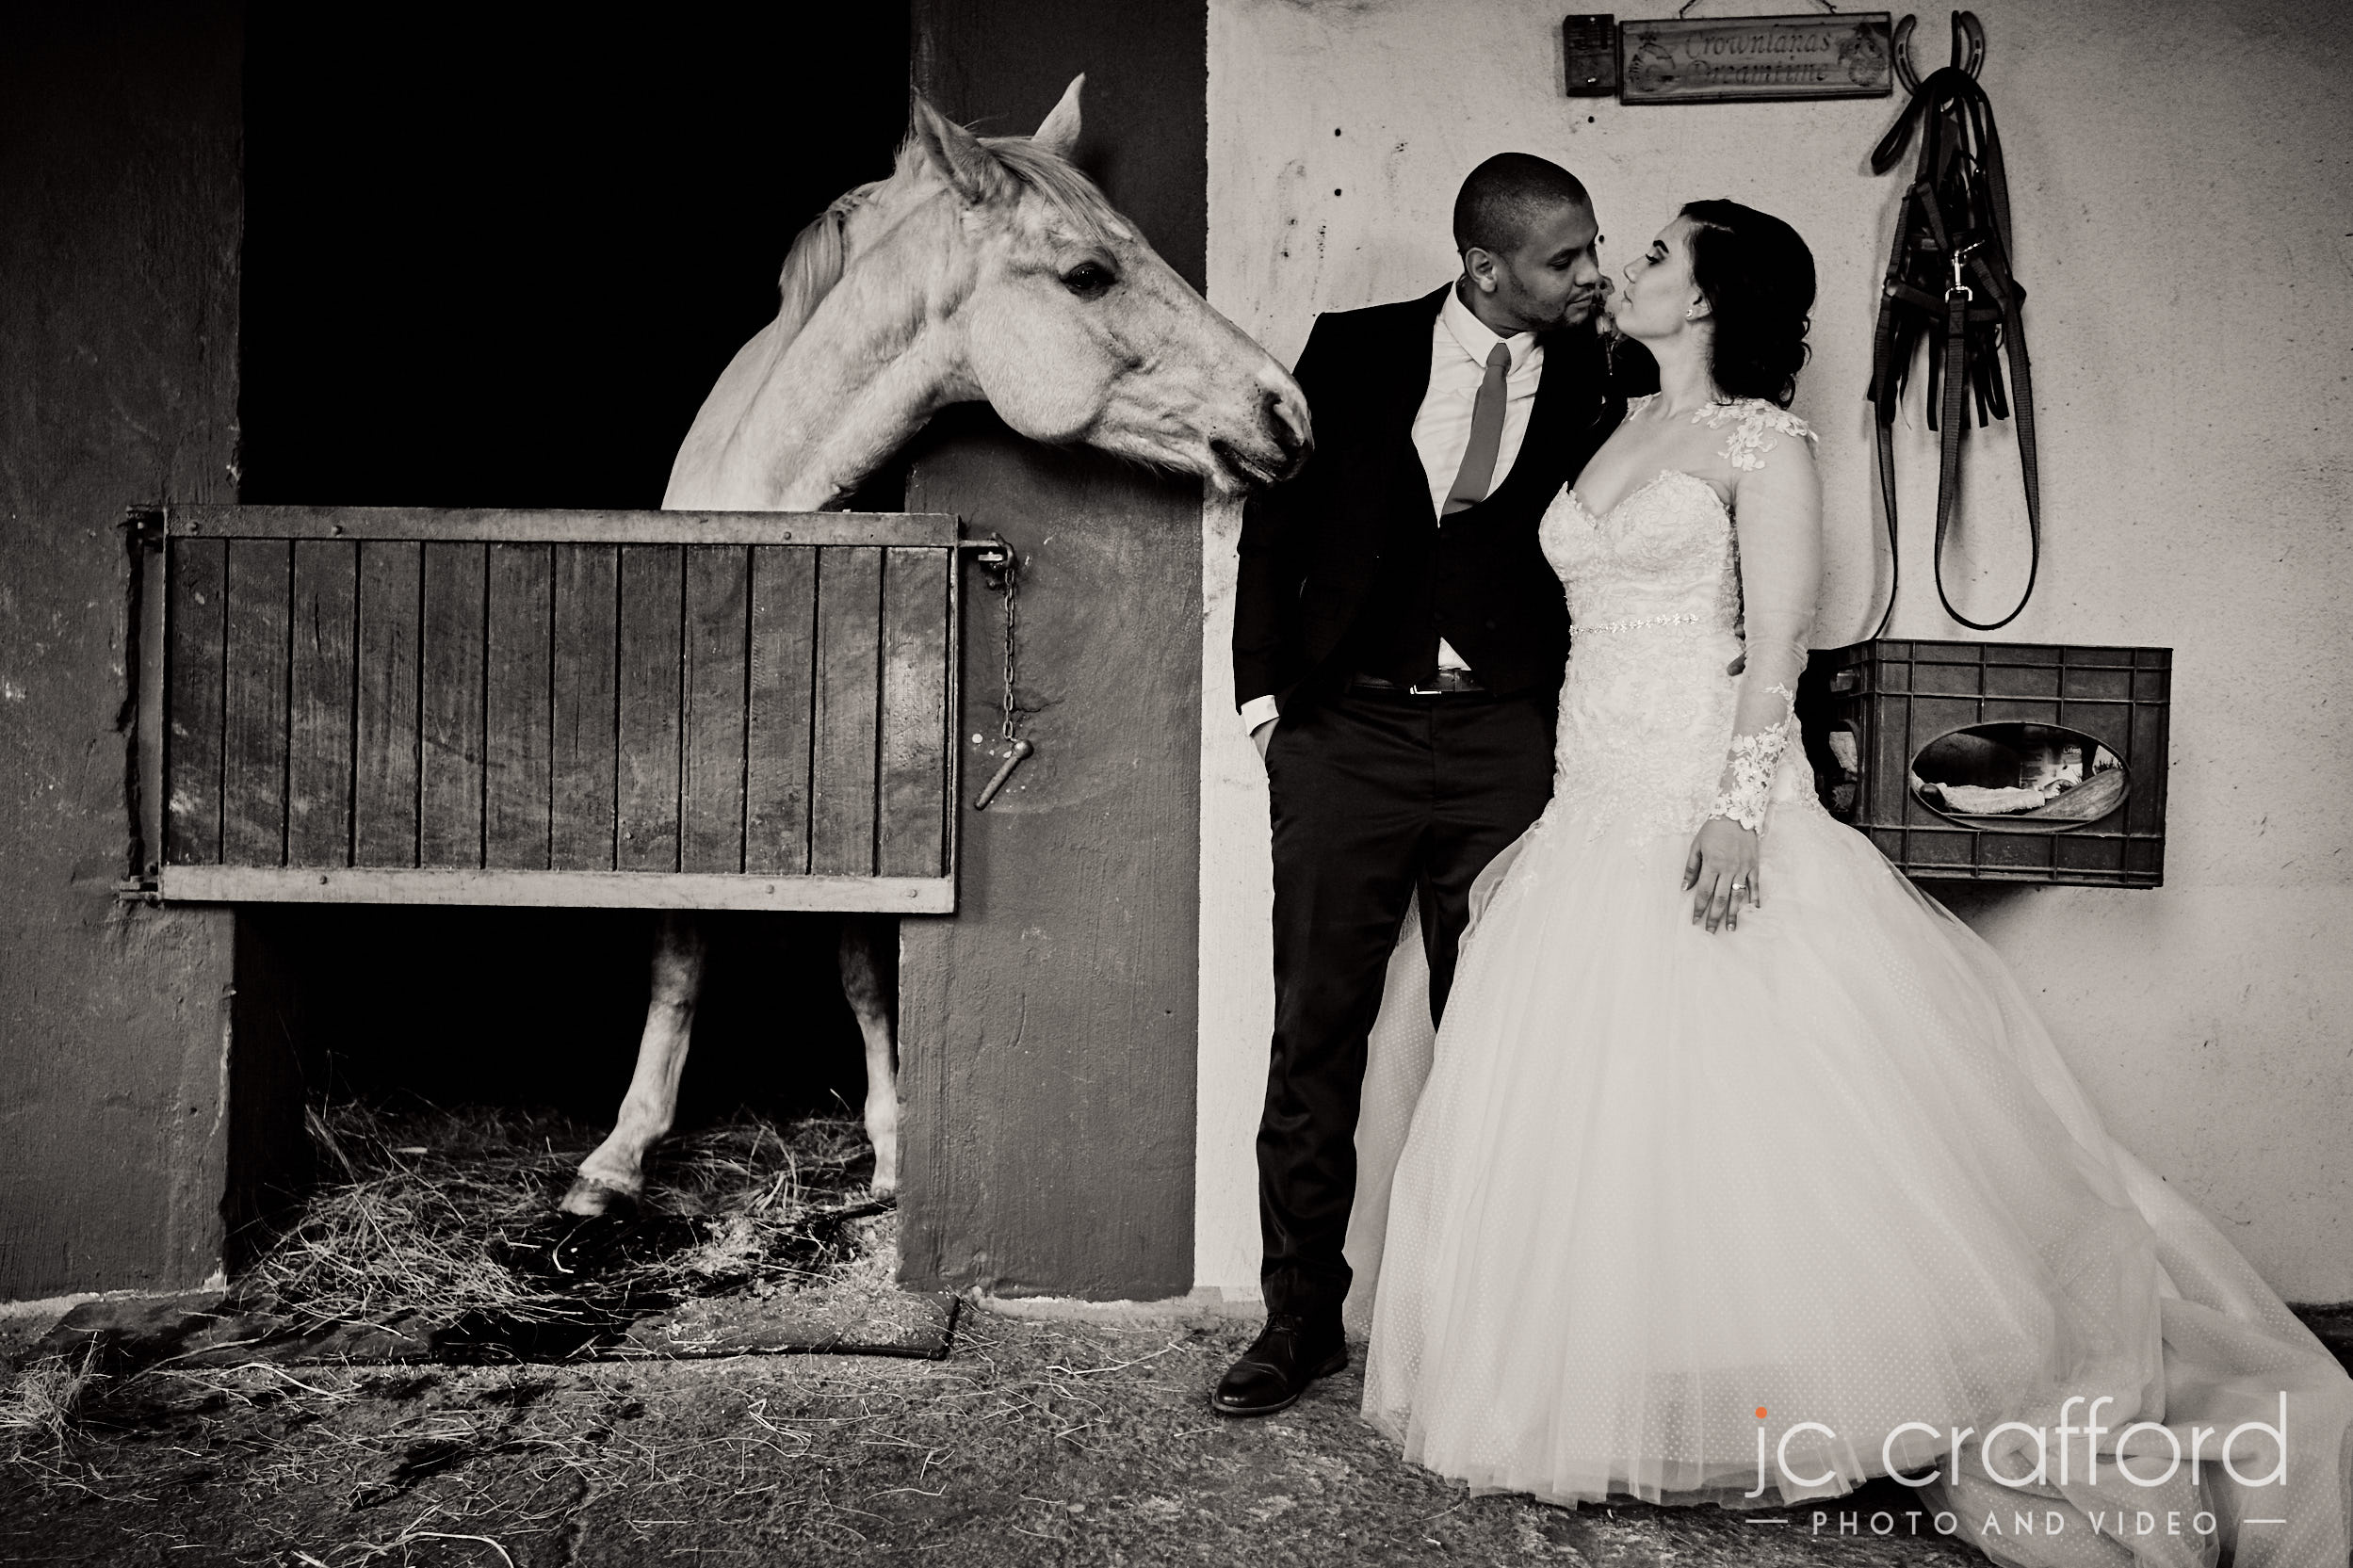 JC Crafford Photo & Video wedding Photography at Chez Charlene